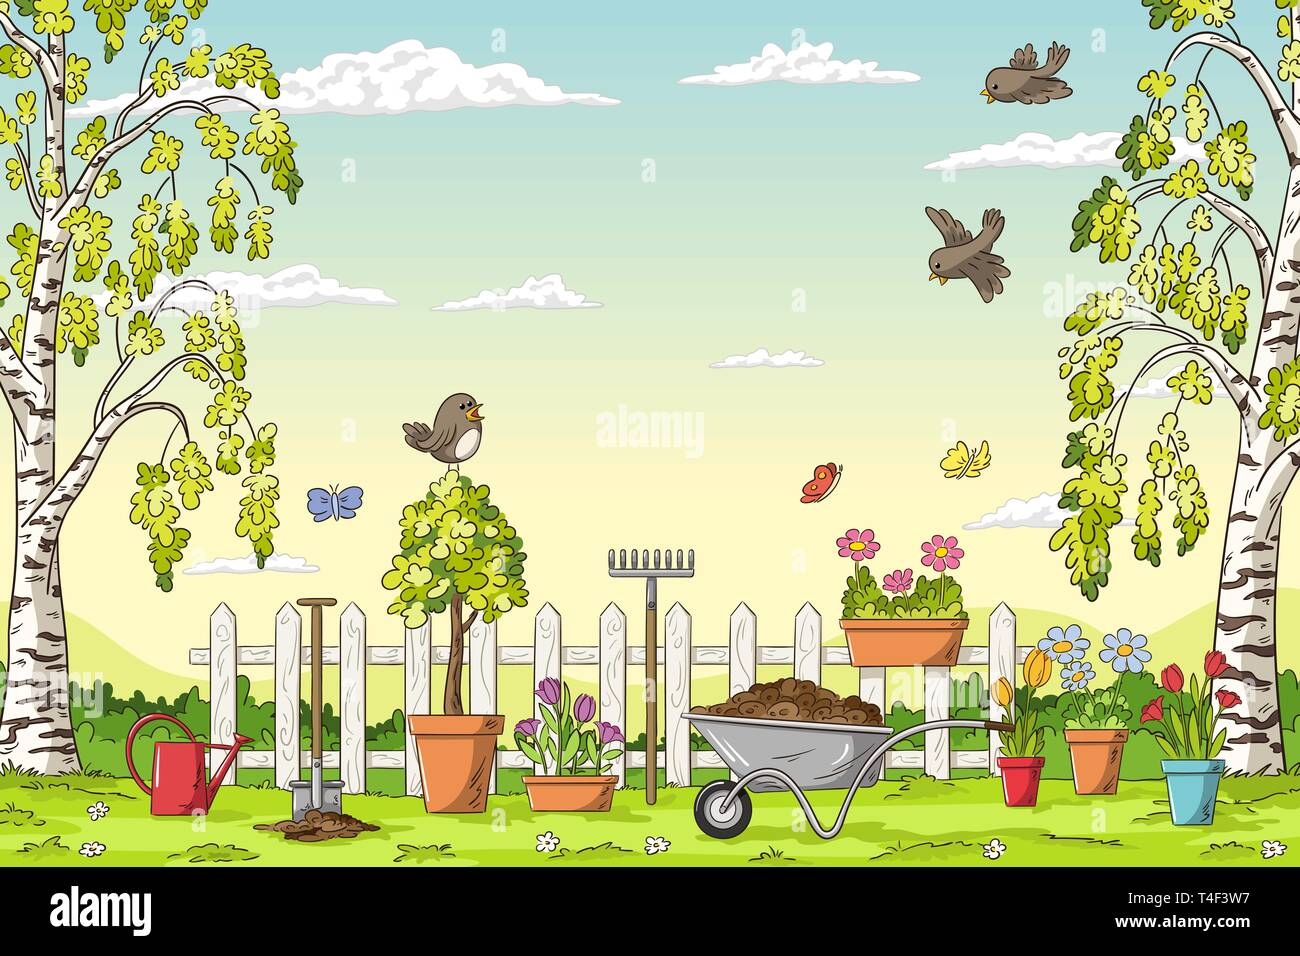 Spring landscape with gardening tolls and birds. Hand draw vector illustration. - Stock Vector